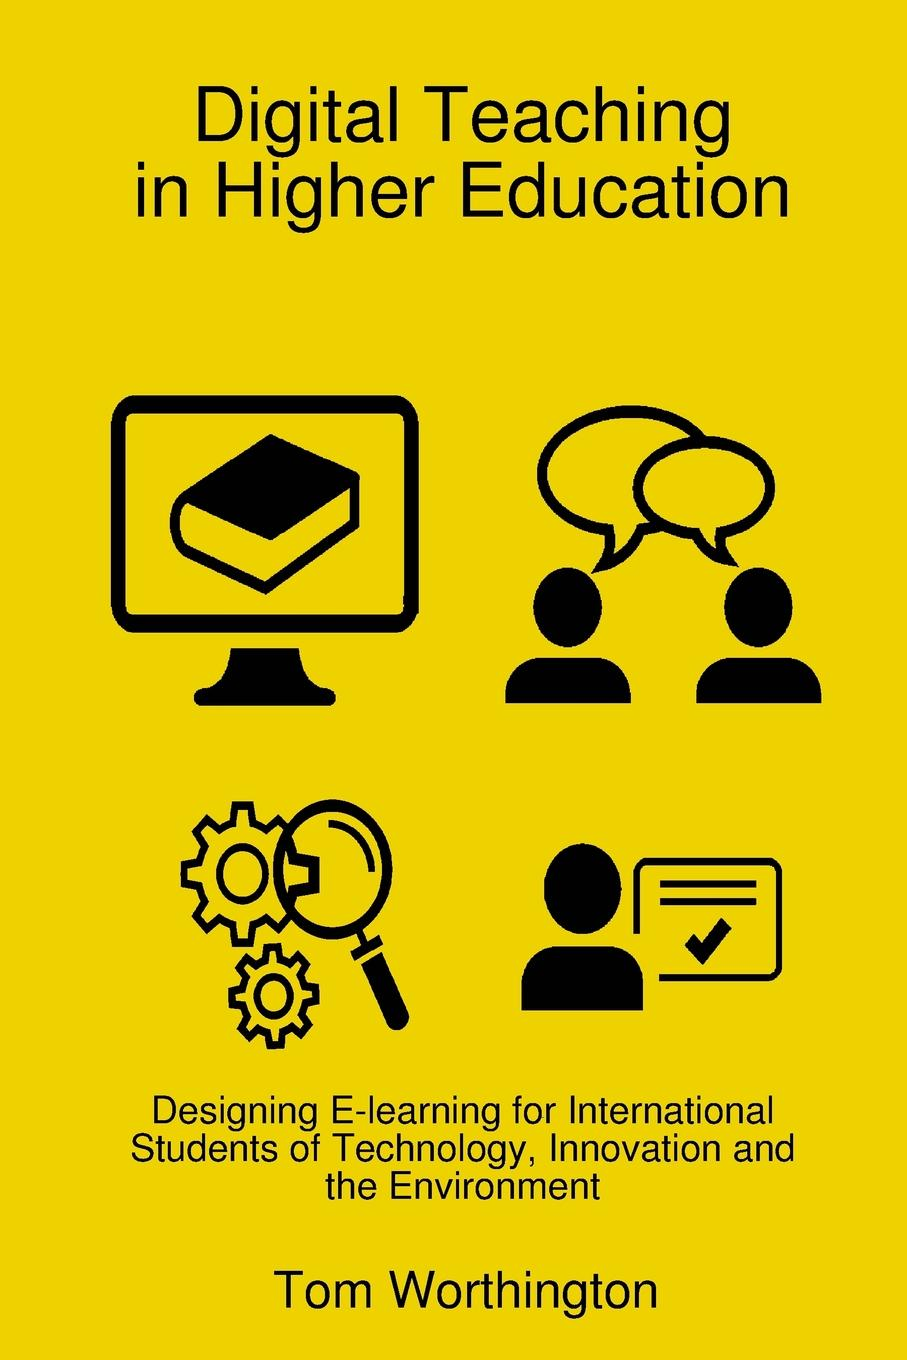 Tom Worthington Digital Teaching In Higher Education. Designing E-learning for International Students of Technology, Innovation and the Environment mirabai bush contemplative practices in higher education powerful methods to transform teaching and learning